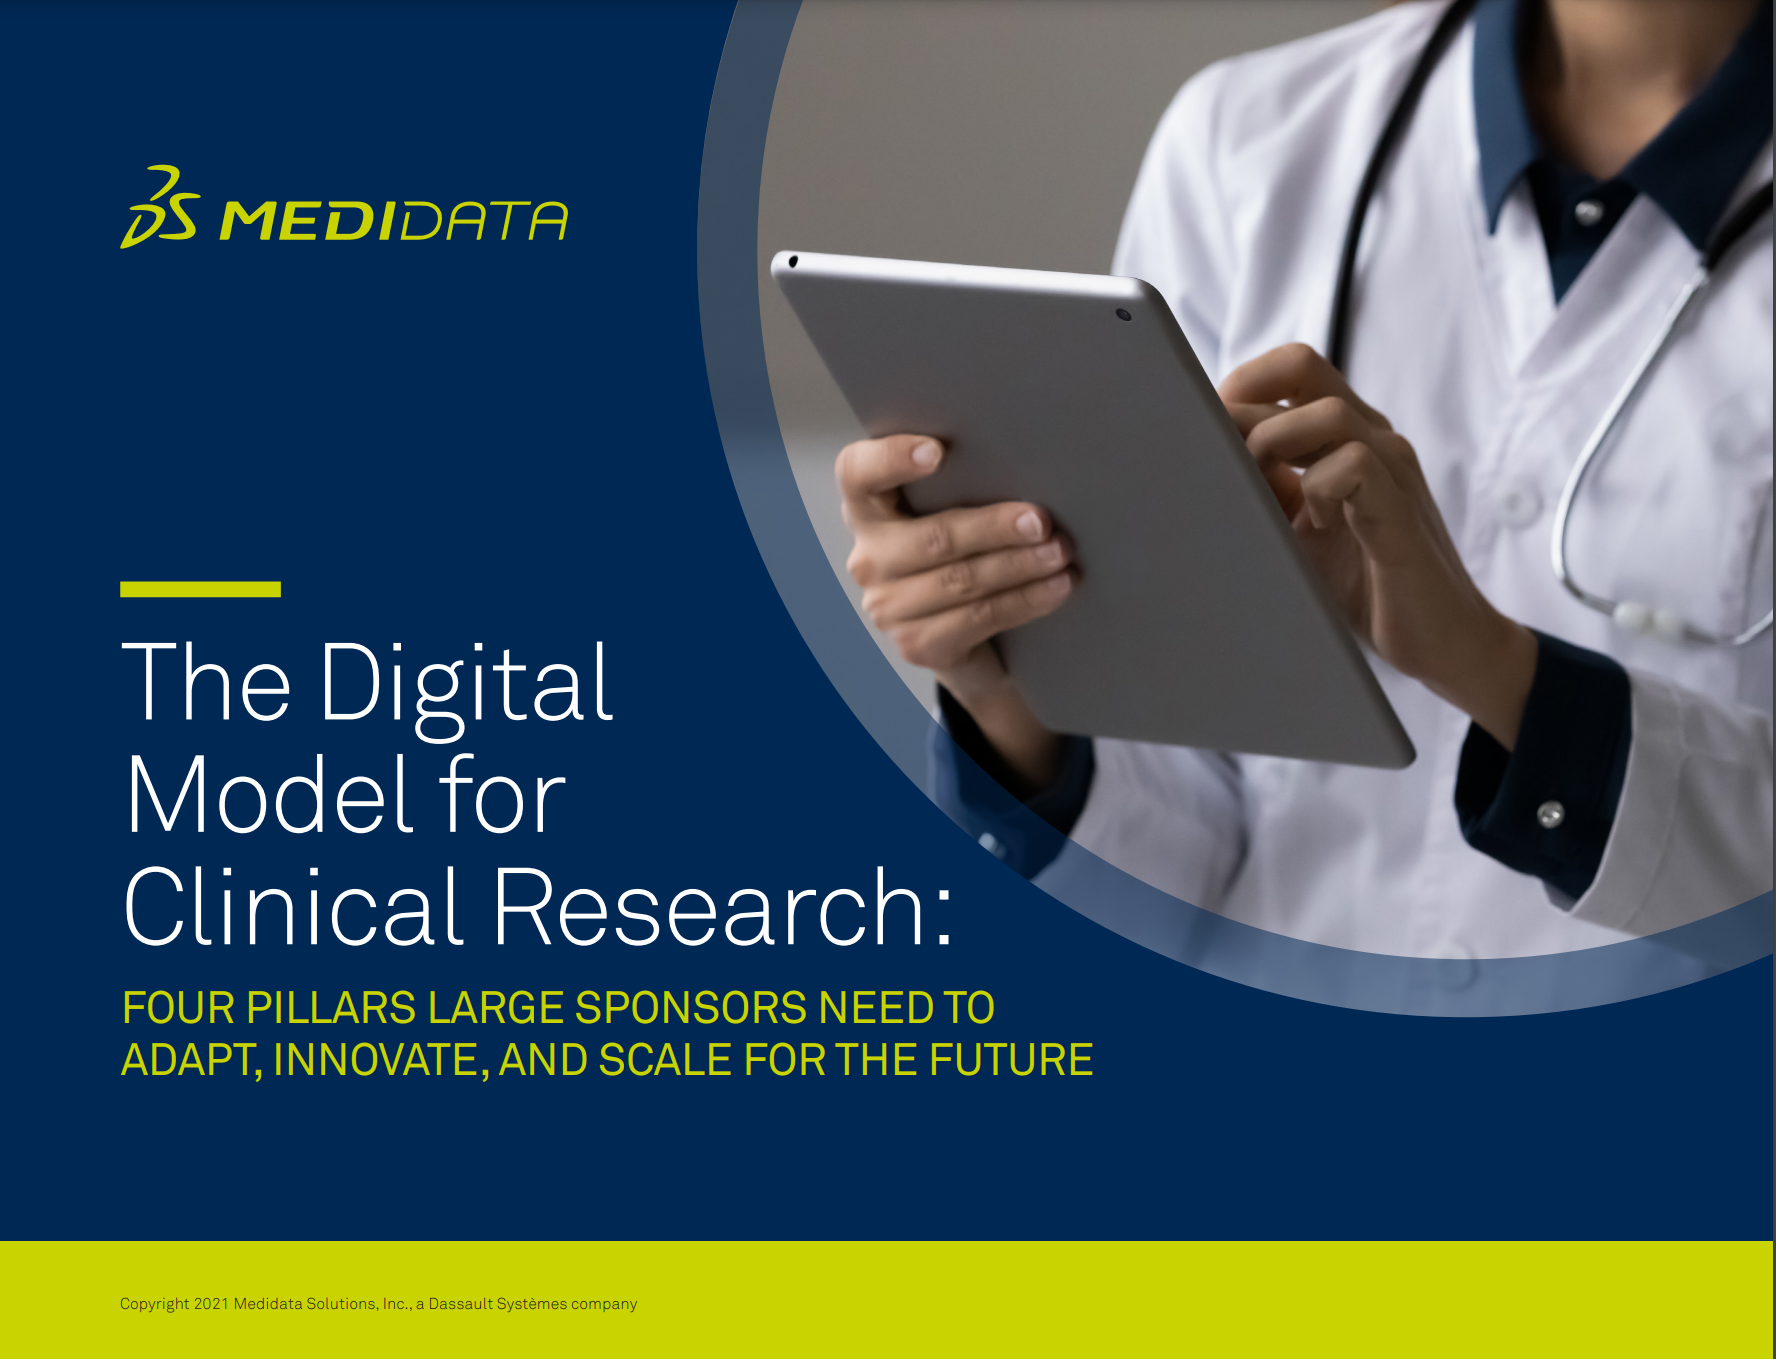 The Digital Model for Clinical Research: Four Pillars Large Sponsors Need to Adapt, Innovate, and Scale Faster